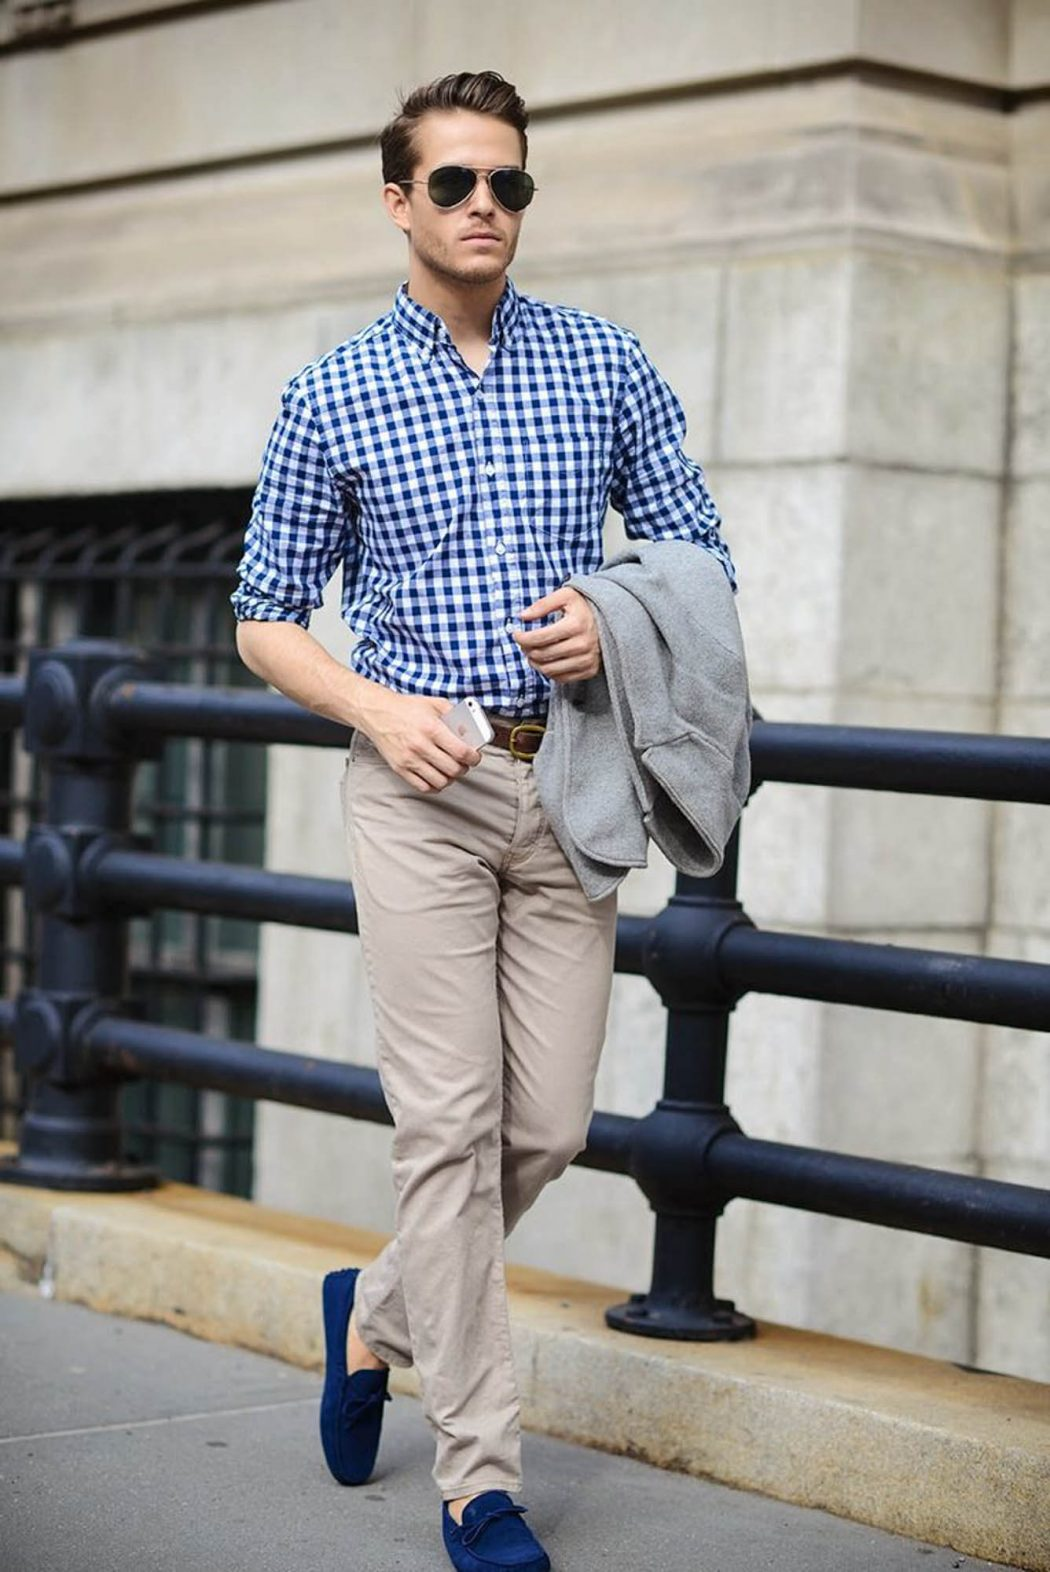 Shoes3 6 Trendy Weddings Outfit Ideas for Men